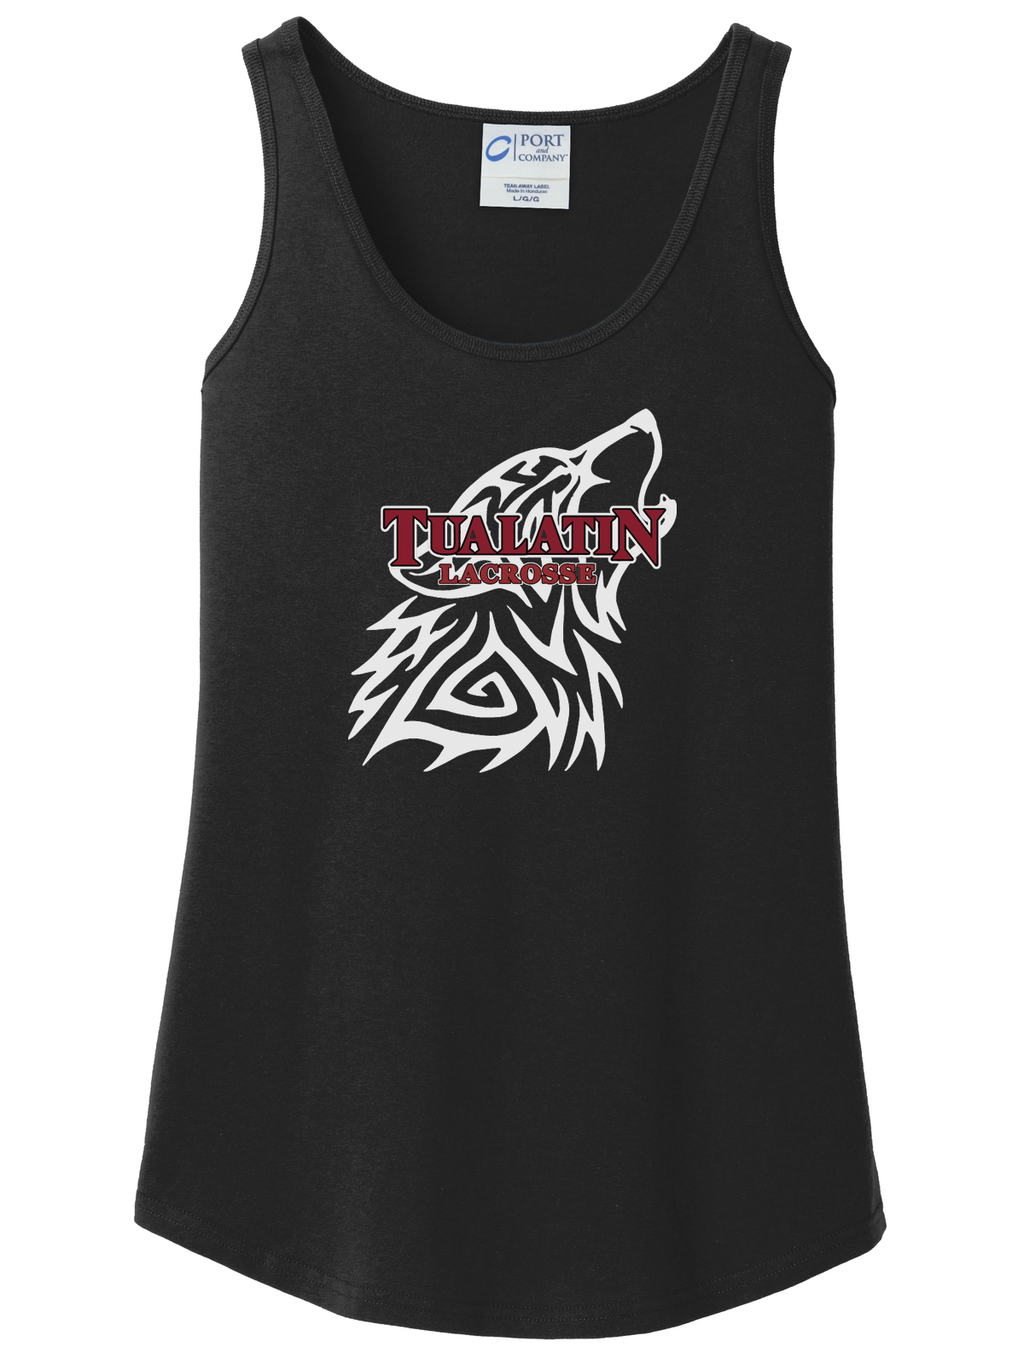 Tualatin Women's Tank Top (Black)